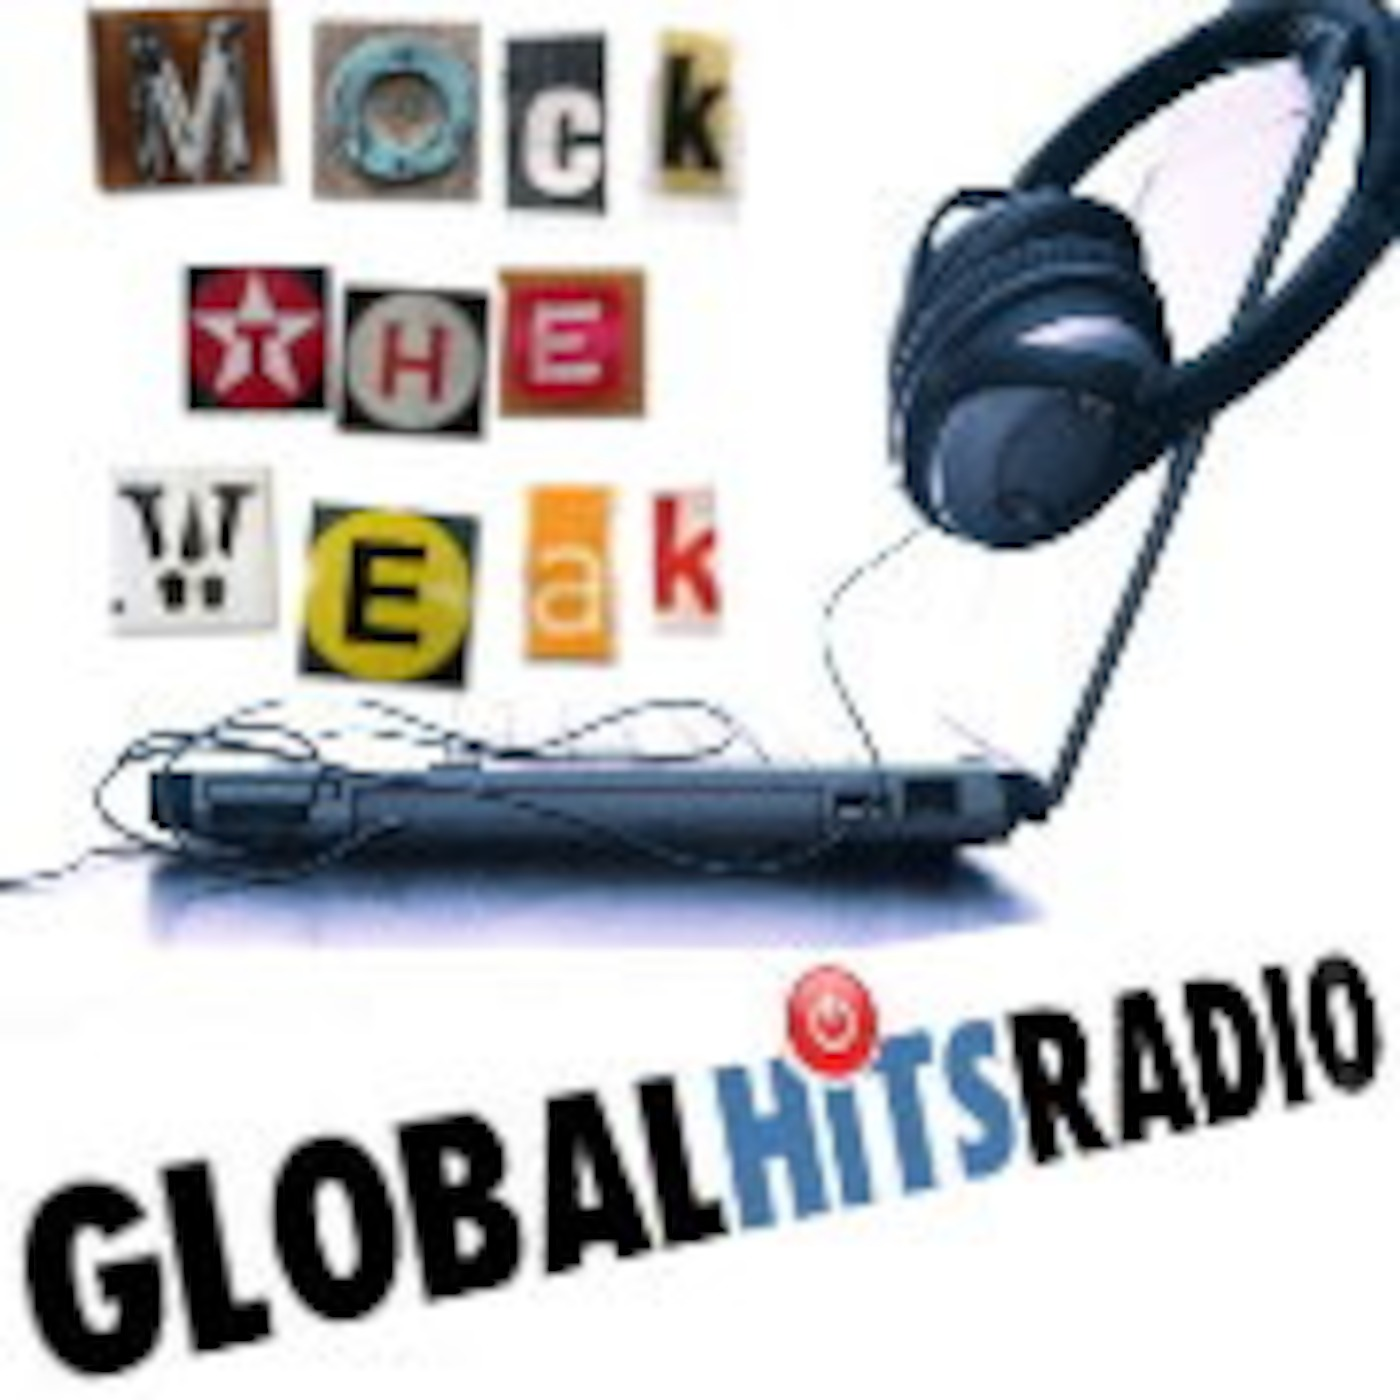 Mock the weak (Global Hits Radio)